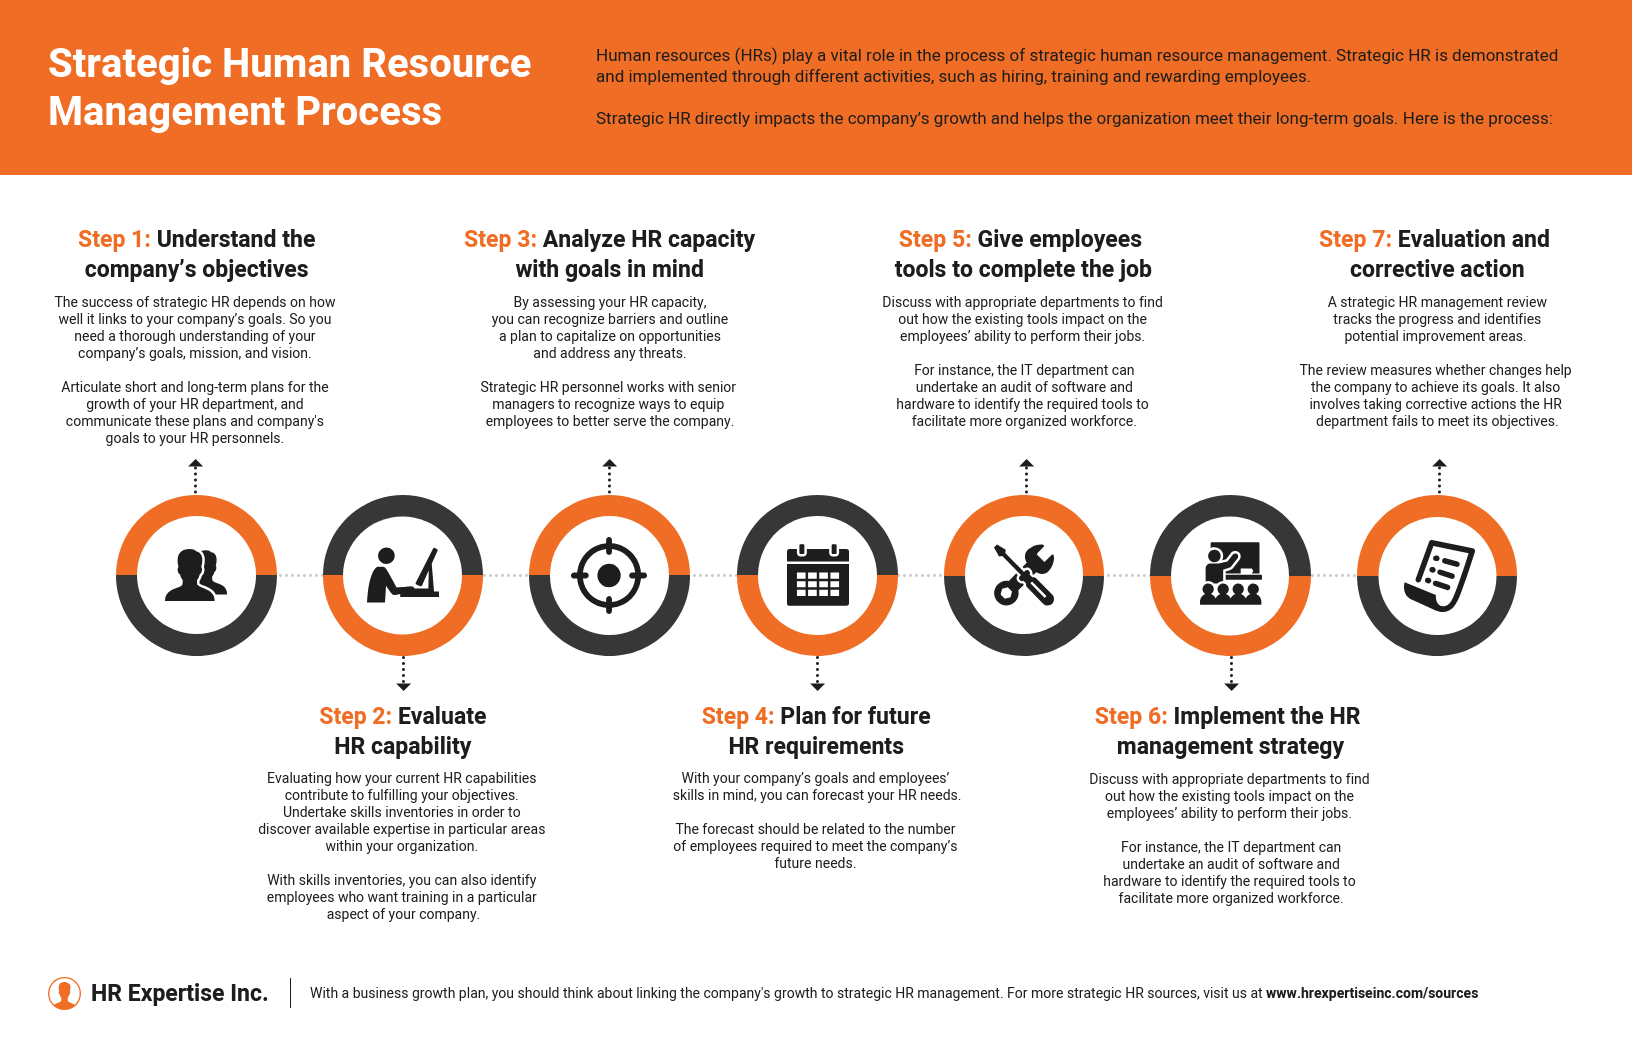 Strategic Human Resource Management Process Infographic Template